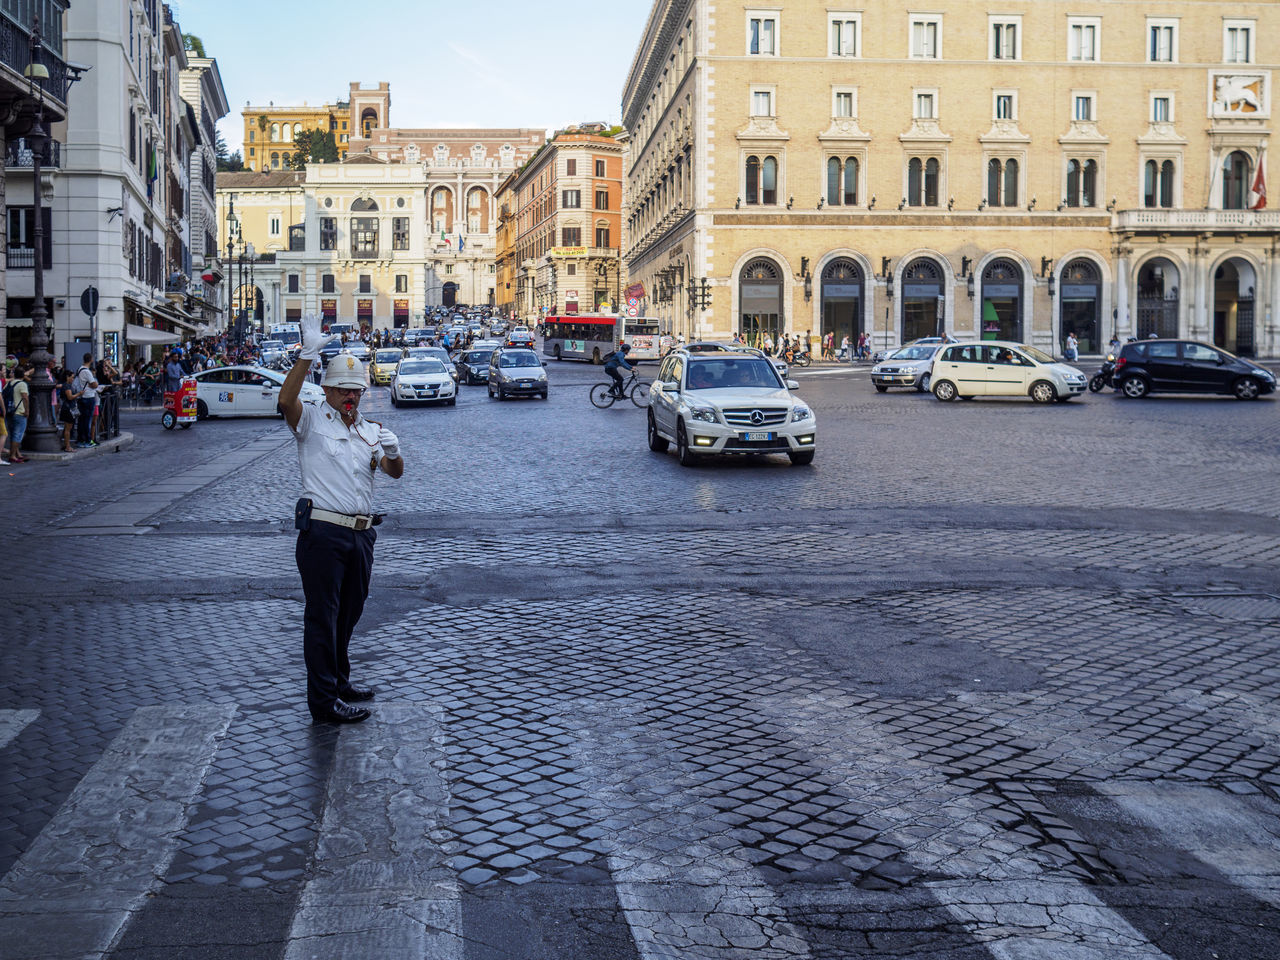 A traffic policeman directs the traffic in Rome Car City Life Italy Rome Street Street Photography Streetphotography Traffic Police  Zebra Crossing